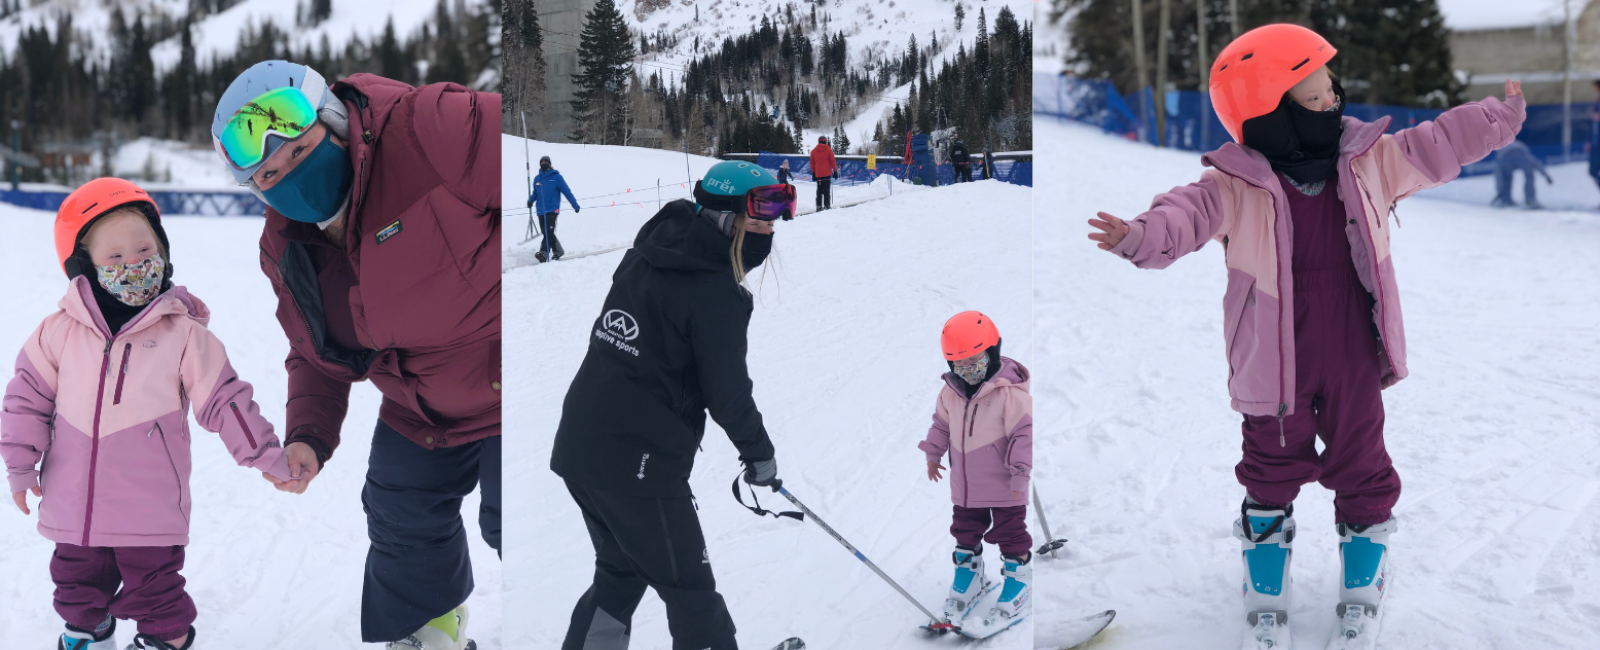 Learning to Ski as a Family